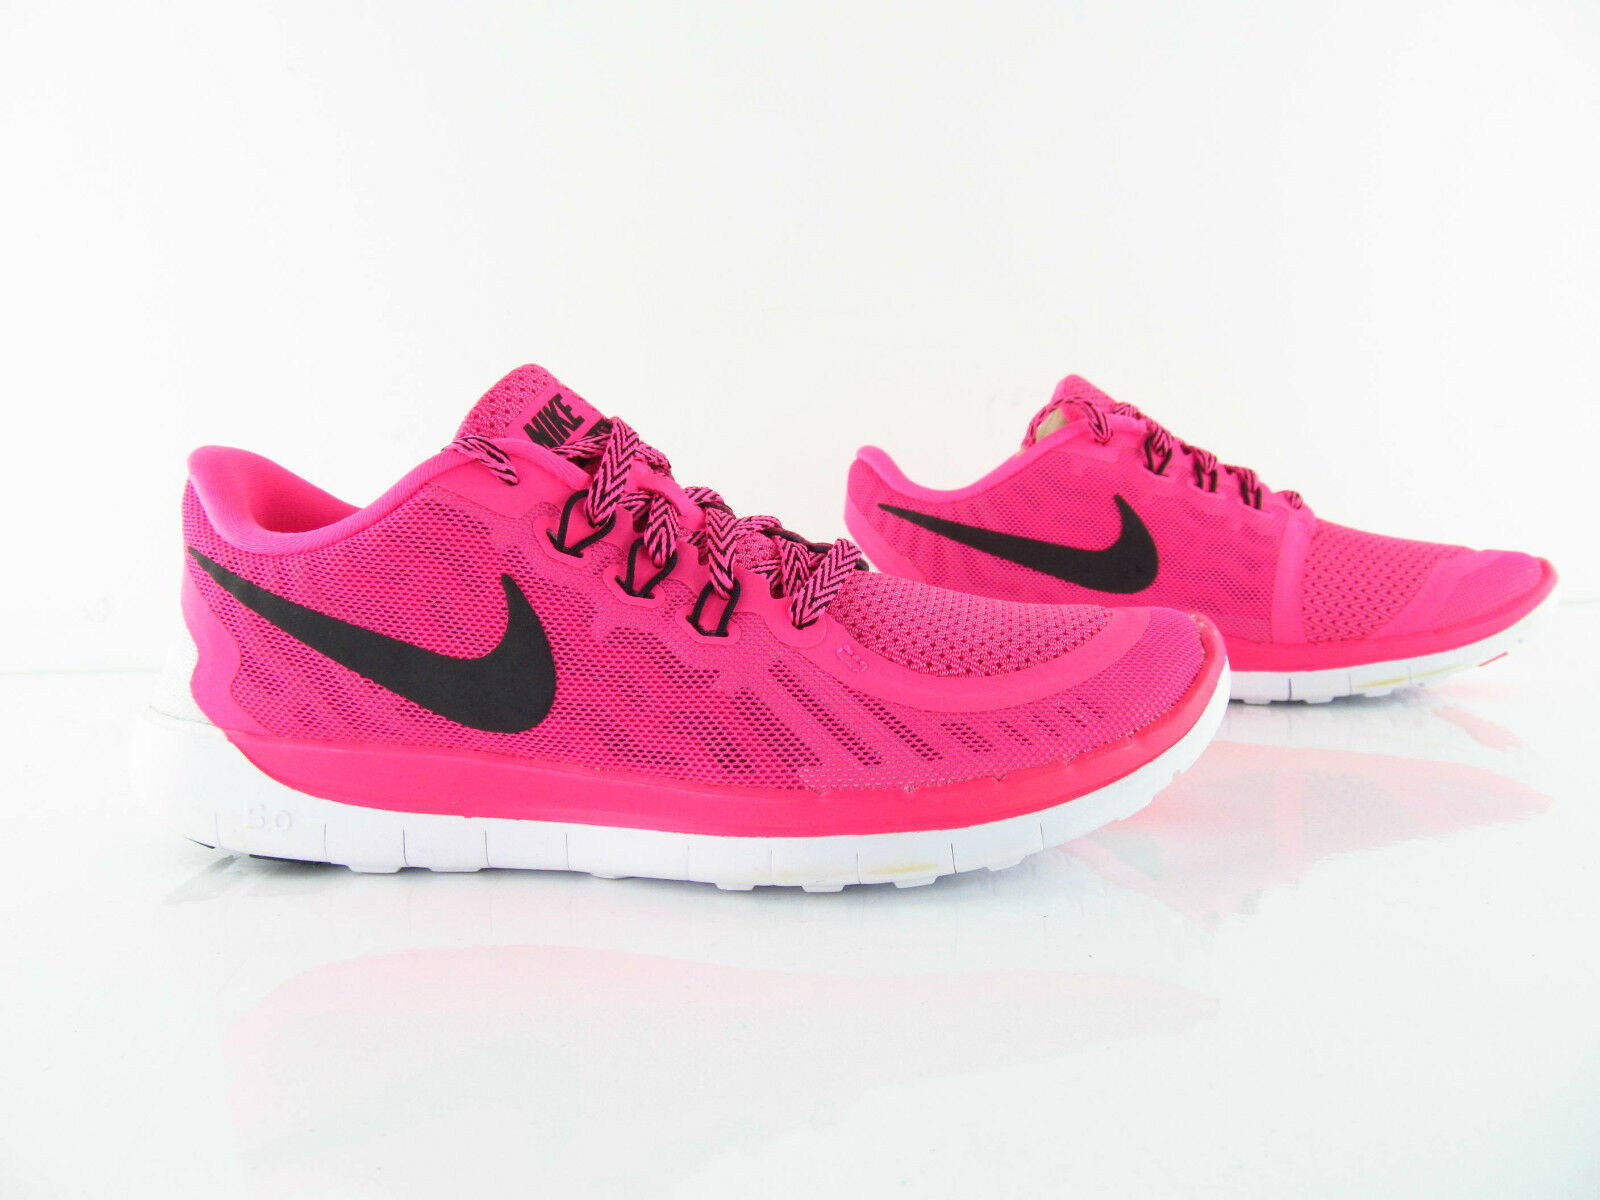 Nike WEISS Free 5.0 Pink Pow WEISS Nike Barefoot Running New Eur_ 37.5 6d5c3a